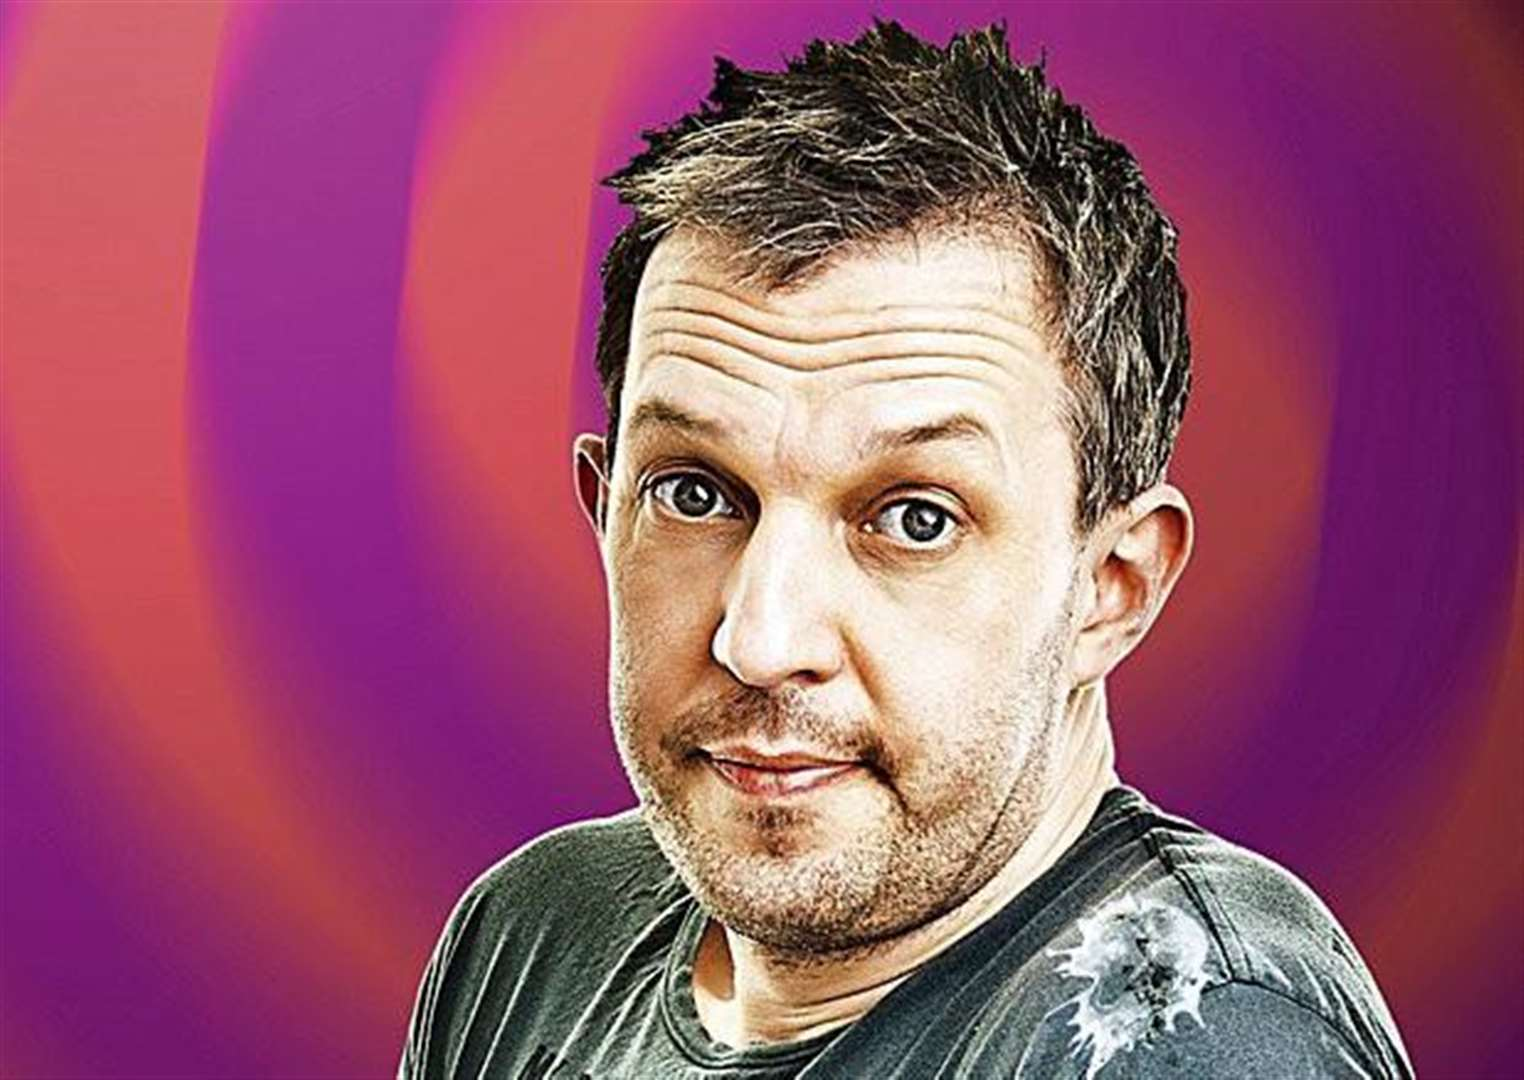 WHAT'S ON: Comedy returns to Grantham Guildhall with Alan Hudson